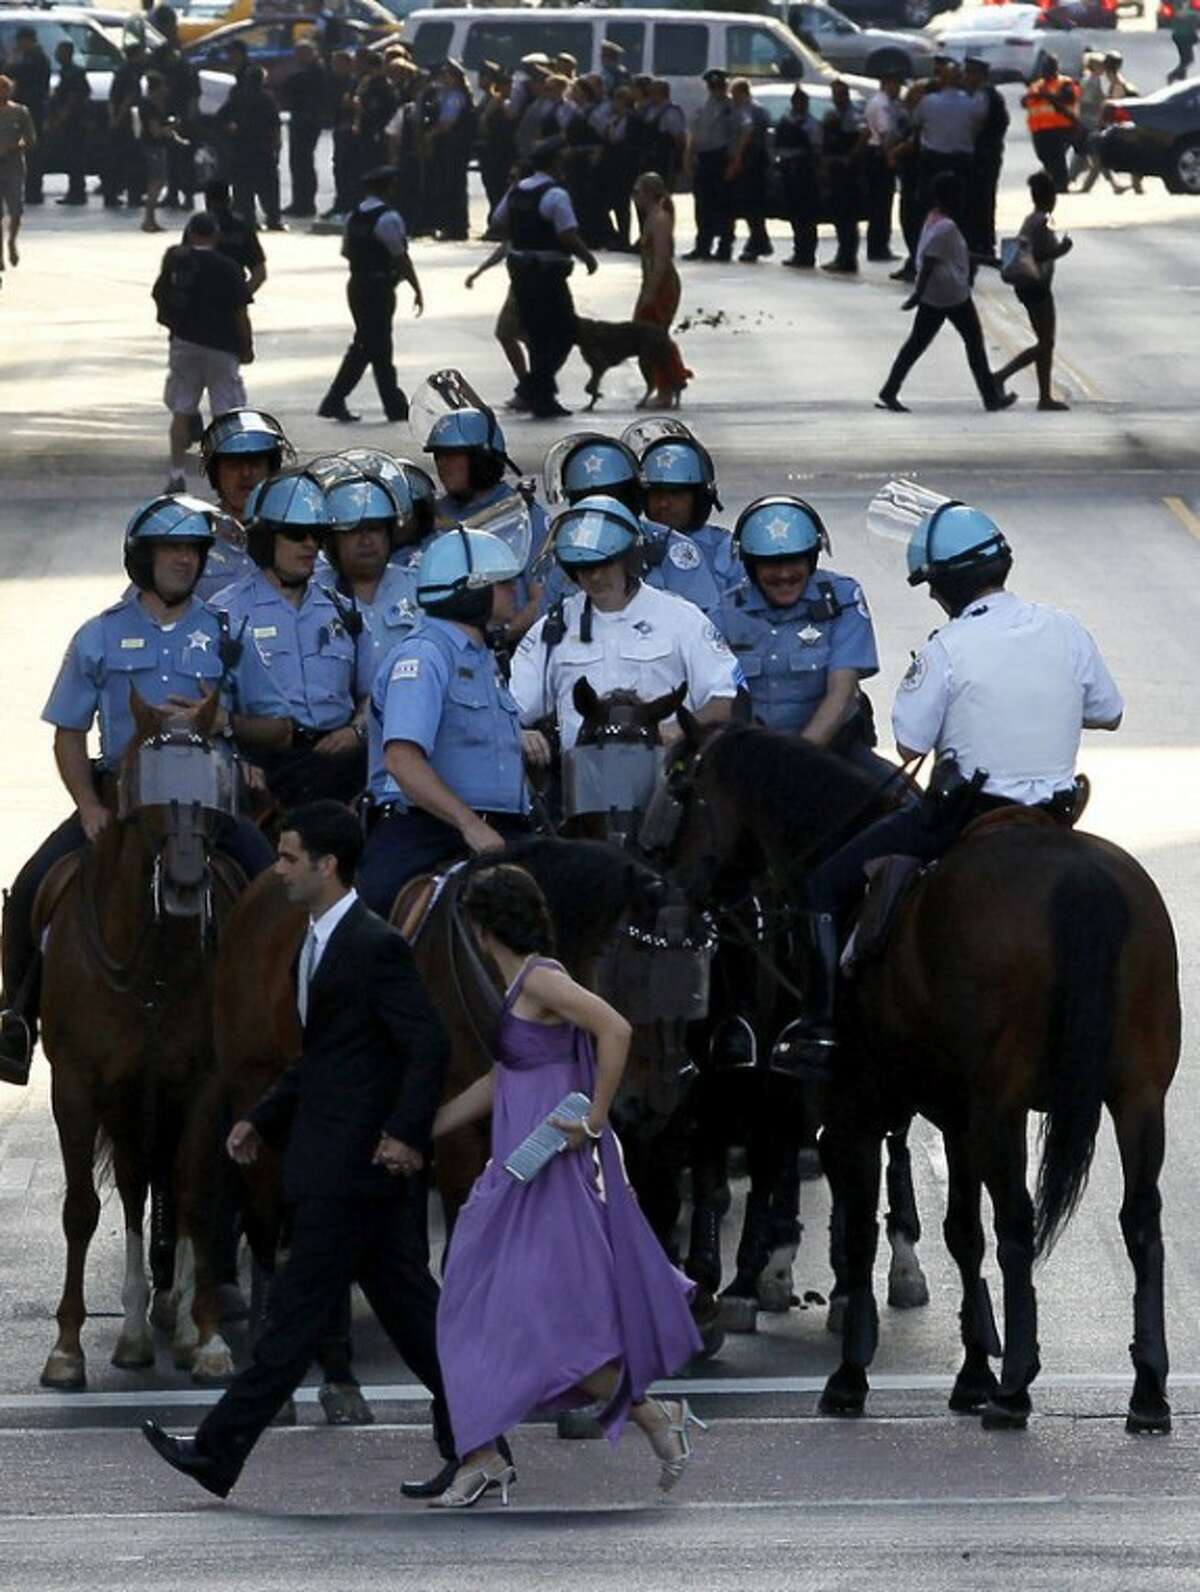 A couple dressed hustle past the Chicago police department's mounted patrol, as members of Occupy Chicago march through the street Saturday, May 19 2012, in Chicago. Security has been high throughout the city in preparation for the NATO summit, where delegations from about 60 countries will discuss the war in Afghanistan and European missile defense. (AP Photo/Charles Rex Arbogast)